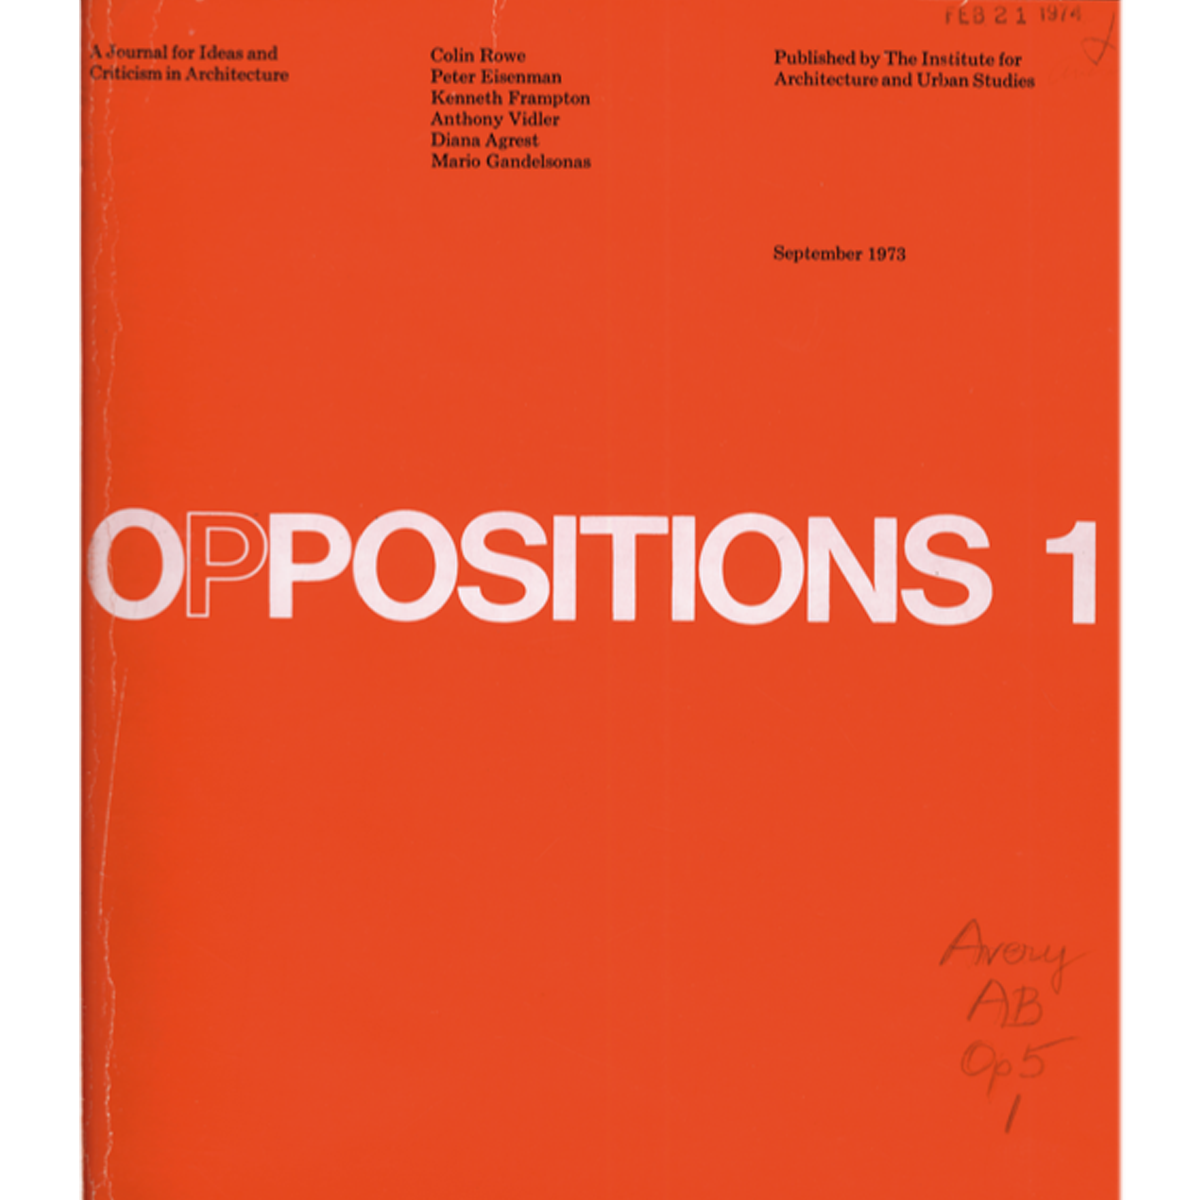 Oppositions